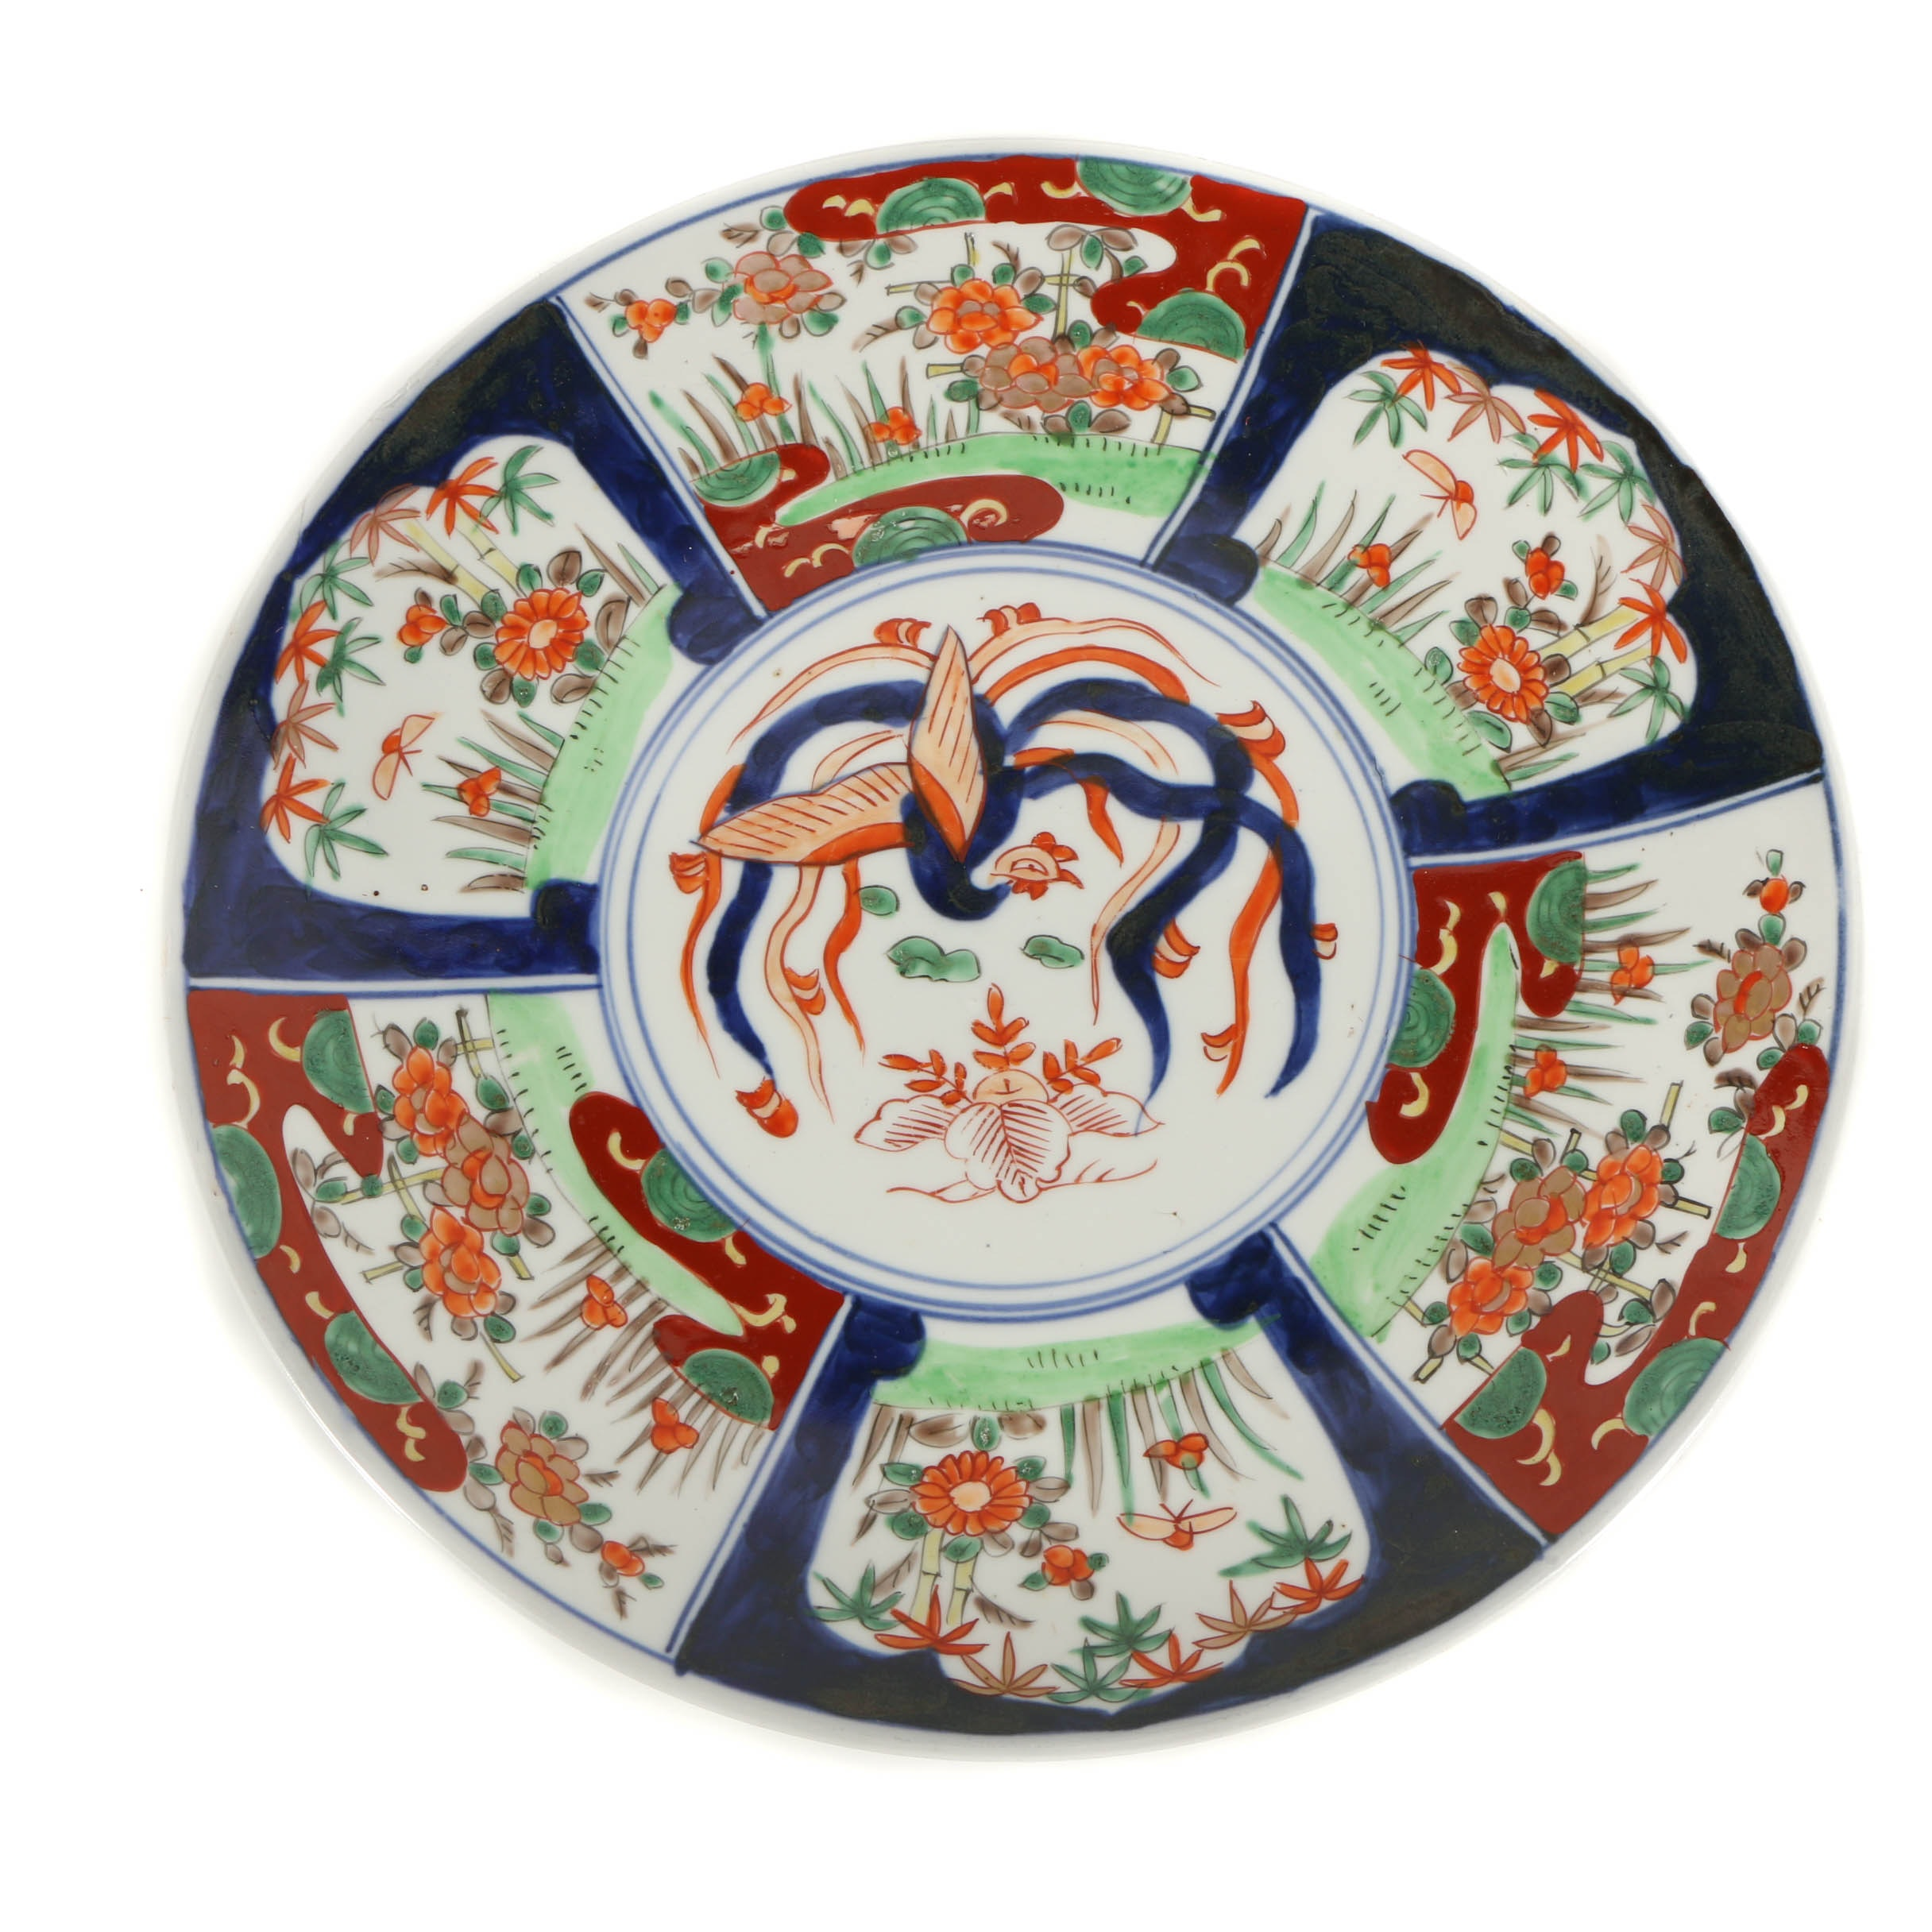 Japanese Porcelain Imari Plate with Floral Motif